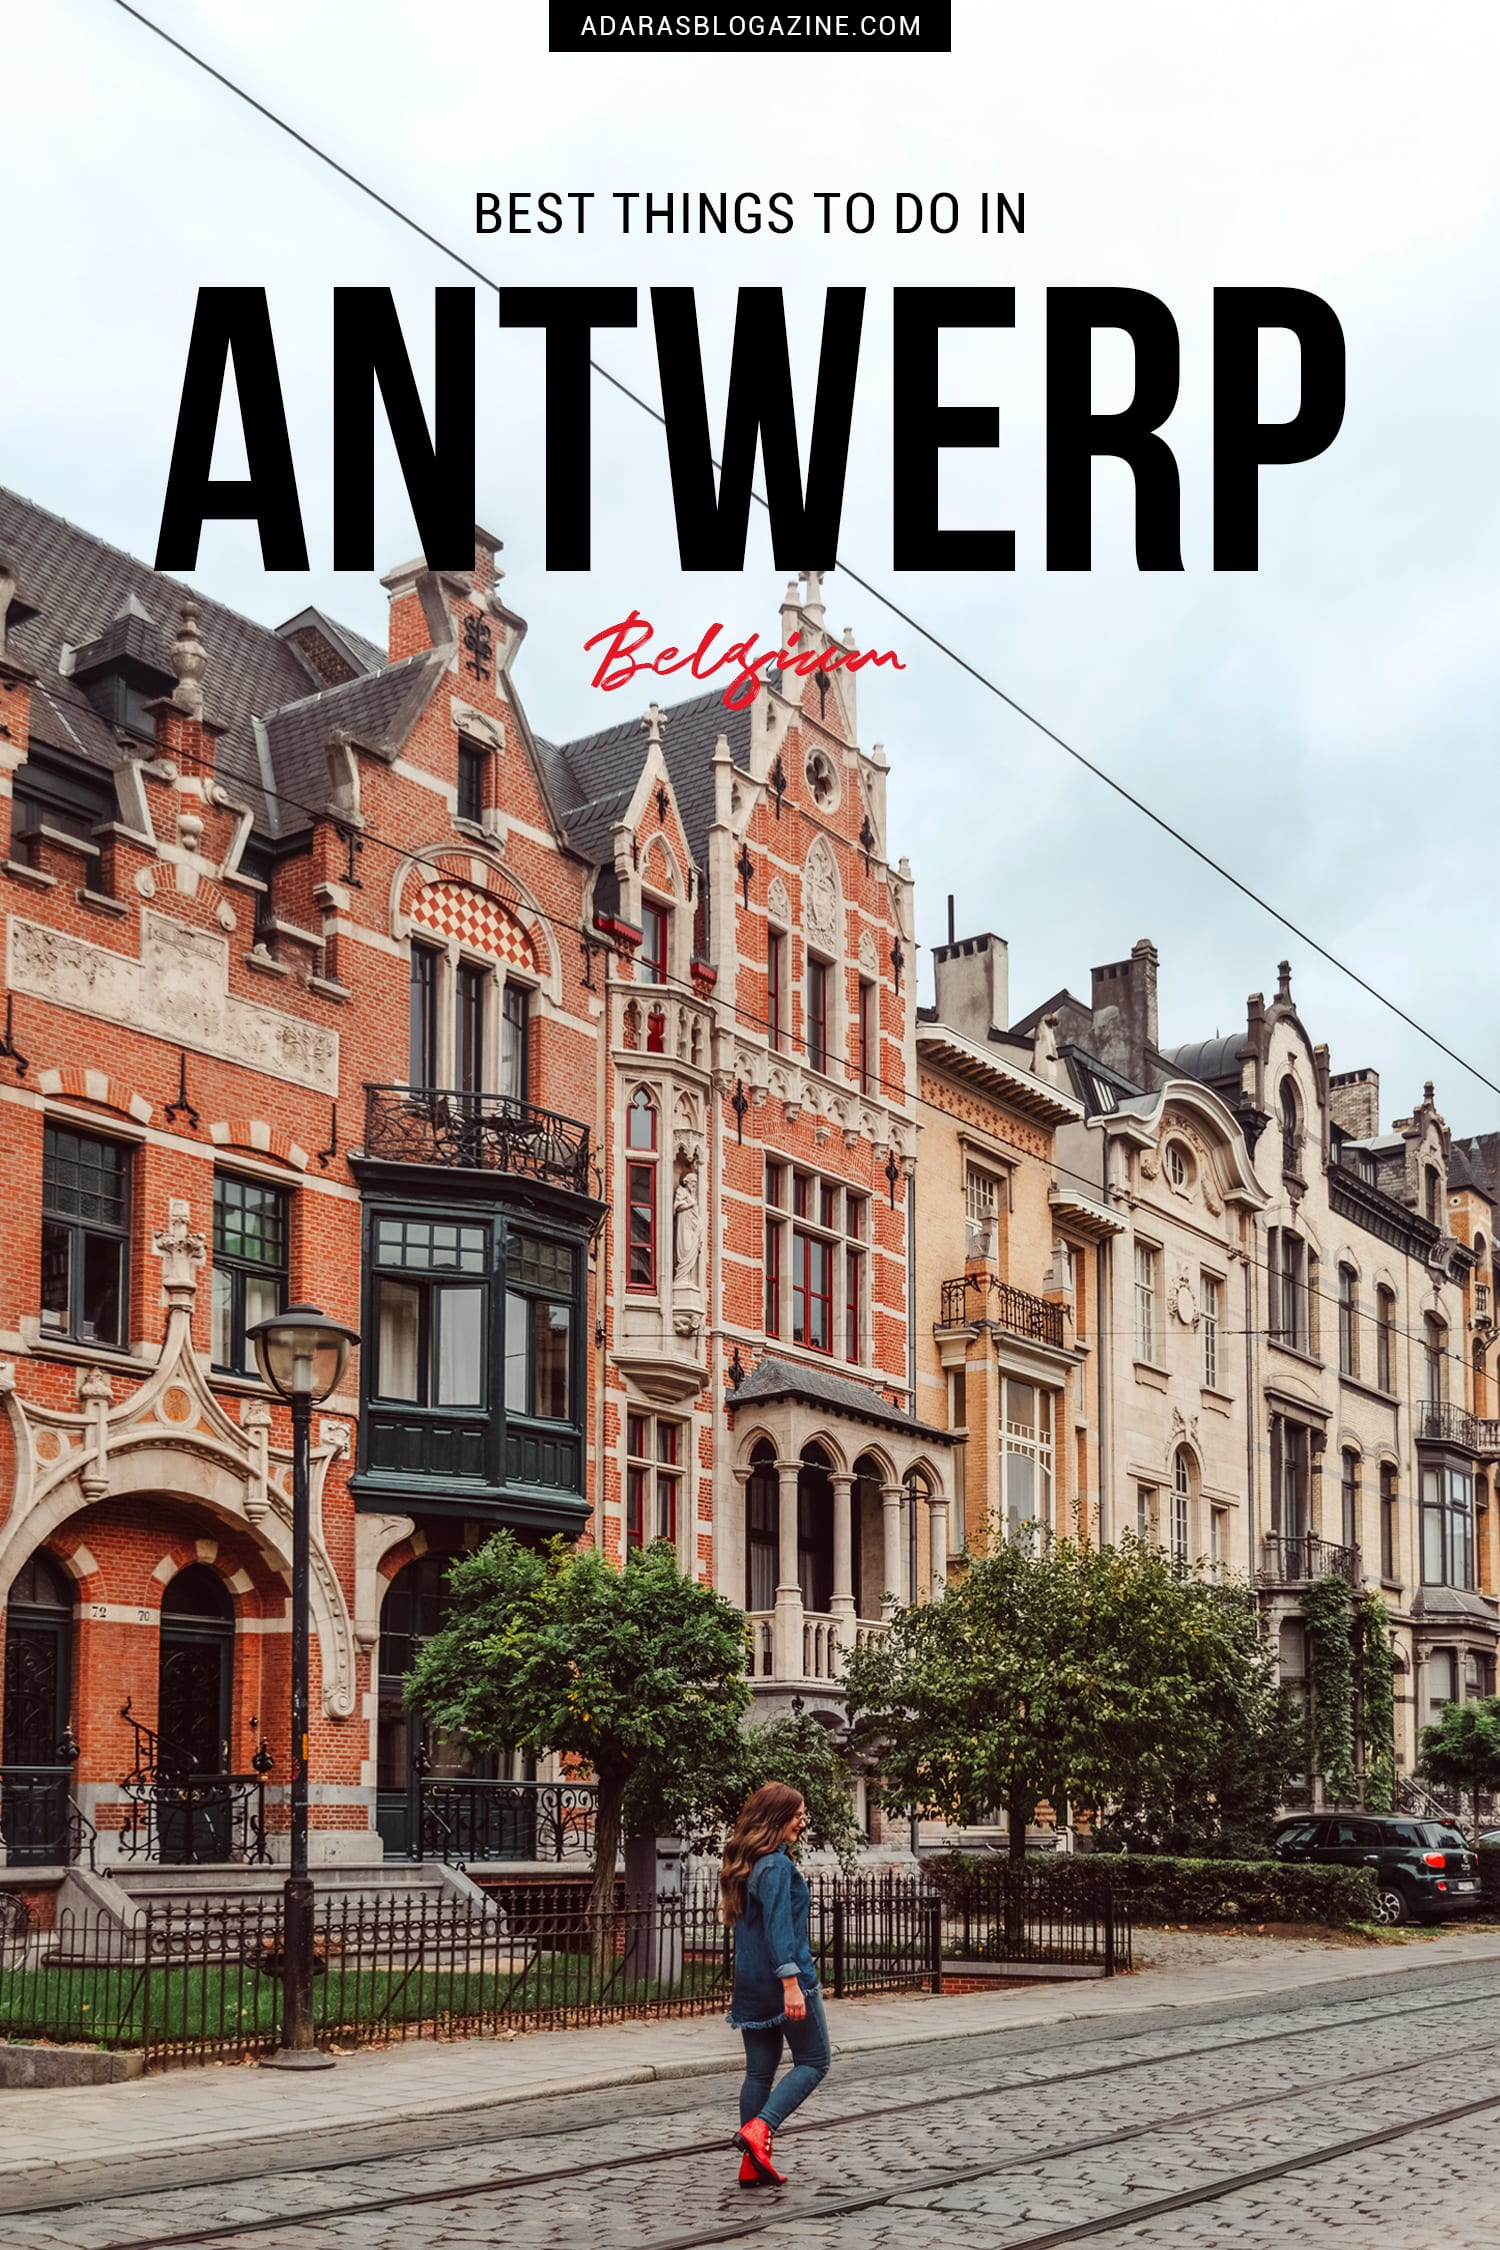 Best Things to Do in Antwerp, Belgium - City Guide